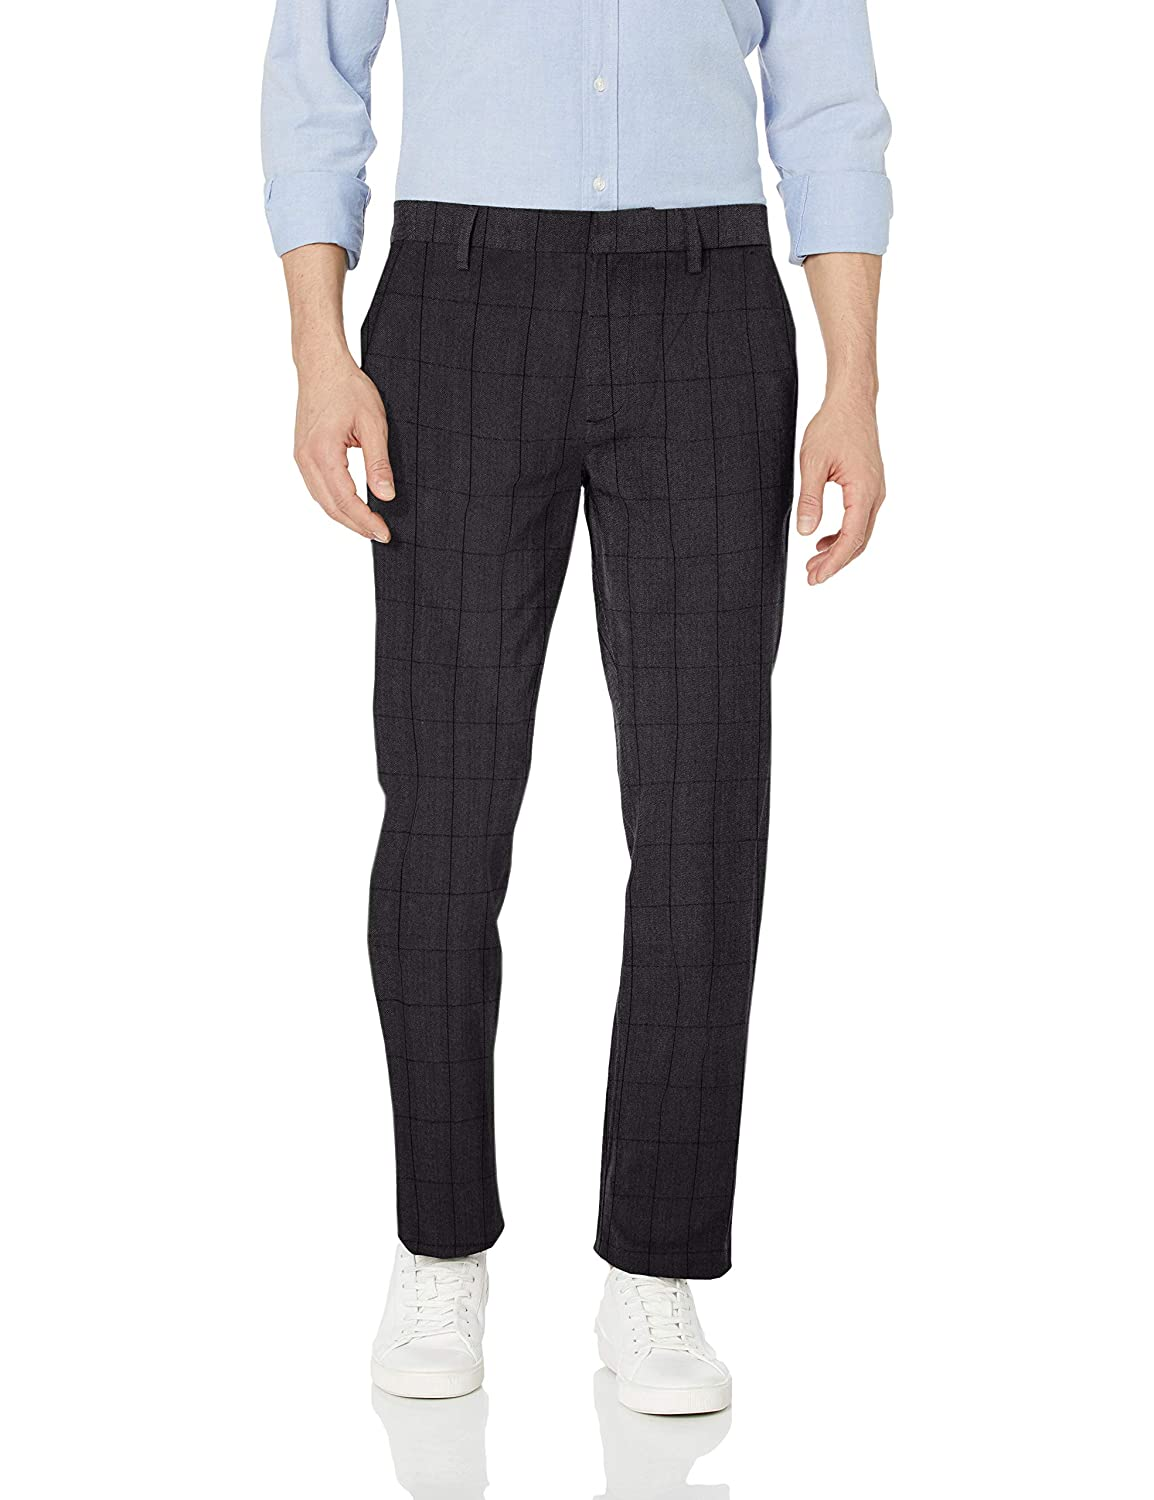 Goodthreads Mens Straight-Fit Modern Comfort Stretch Chino Pant Brand